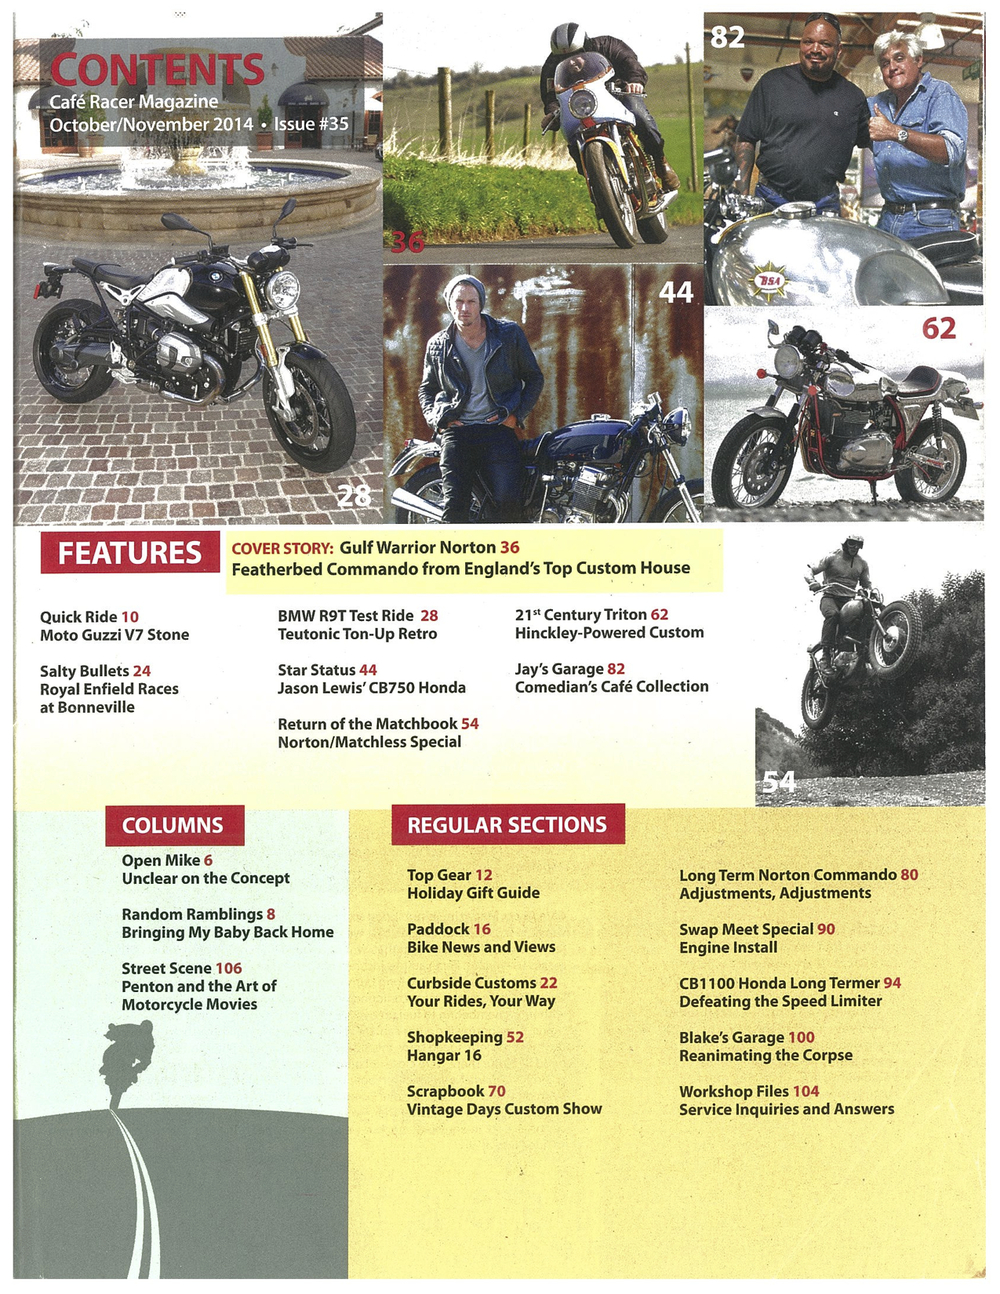 motorcycle film festival cafe racer mag issue 35 2